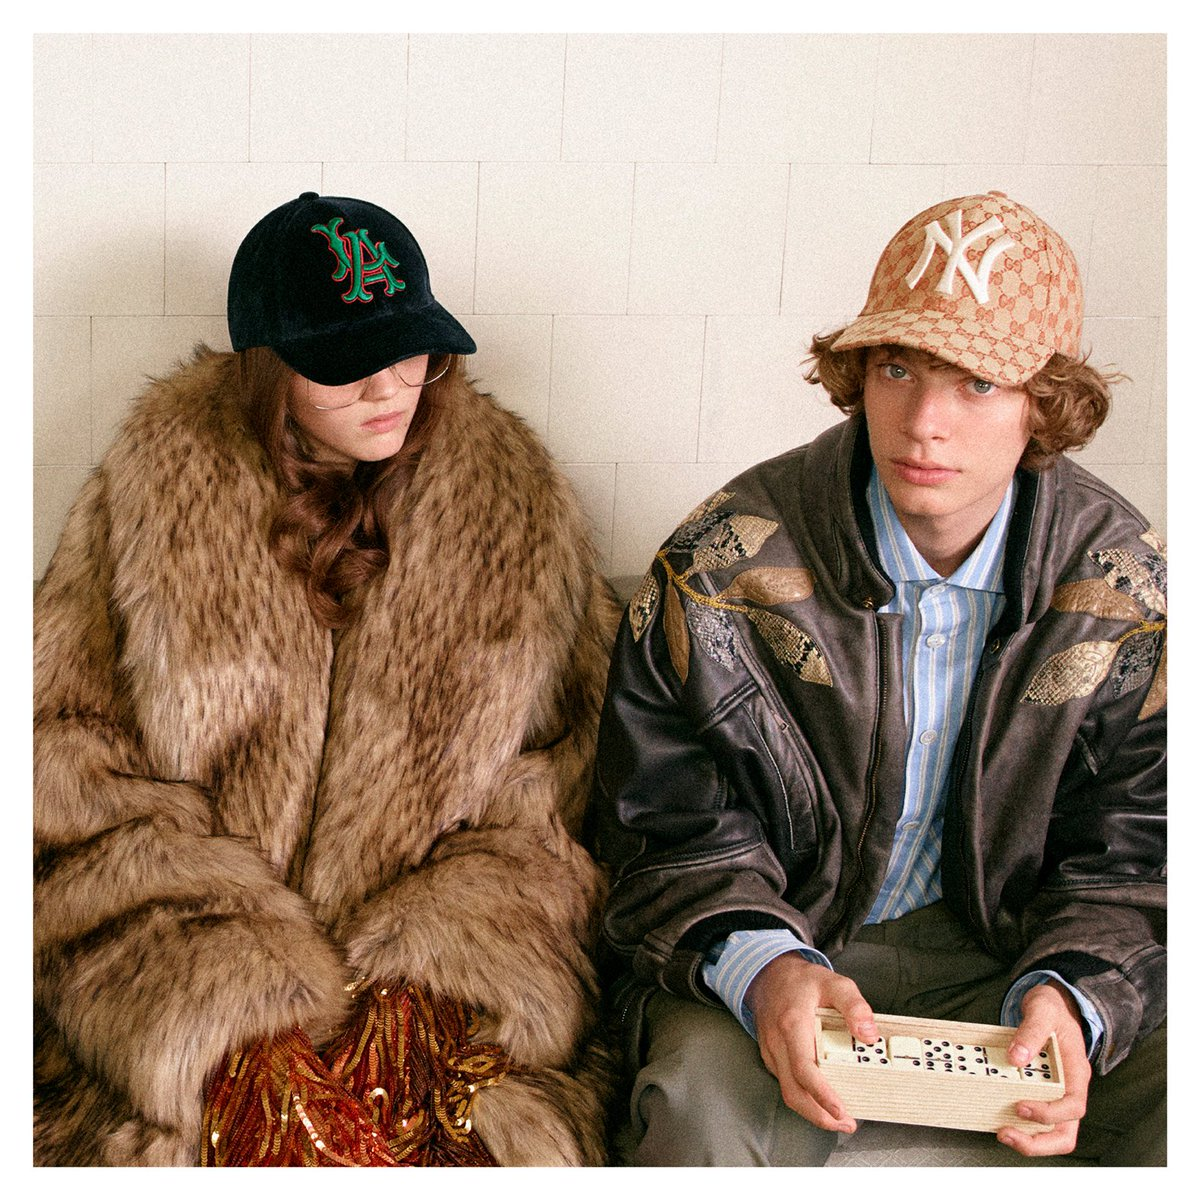 A mix of Major League Baseball teams decorate a lineup of baseball caps from #GucciFW18 by #AlessandroMichele. Discover more https://t.co/G44UkOGRaz. Gucci / MLBP